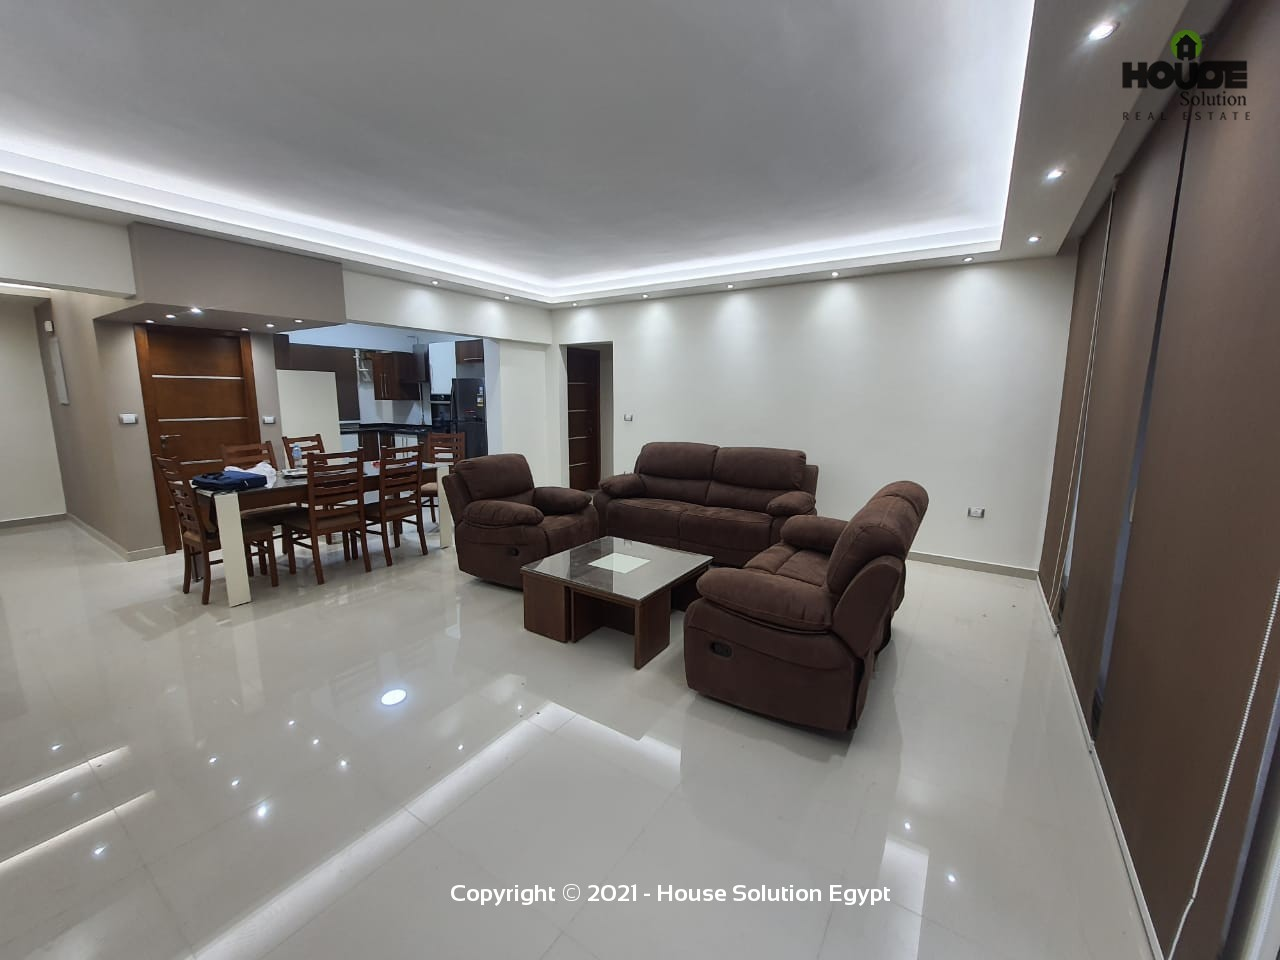 Superb Modern Furnished Apartment For Rent In Sarayat El Maadi  - 4975 Featured Image